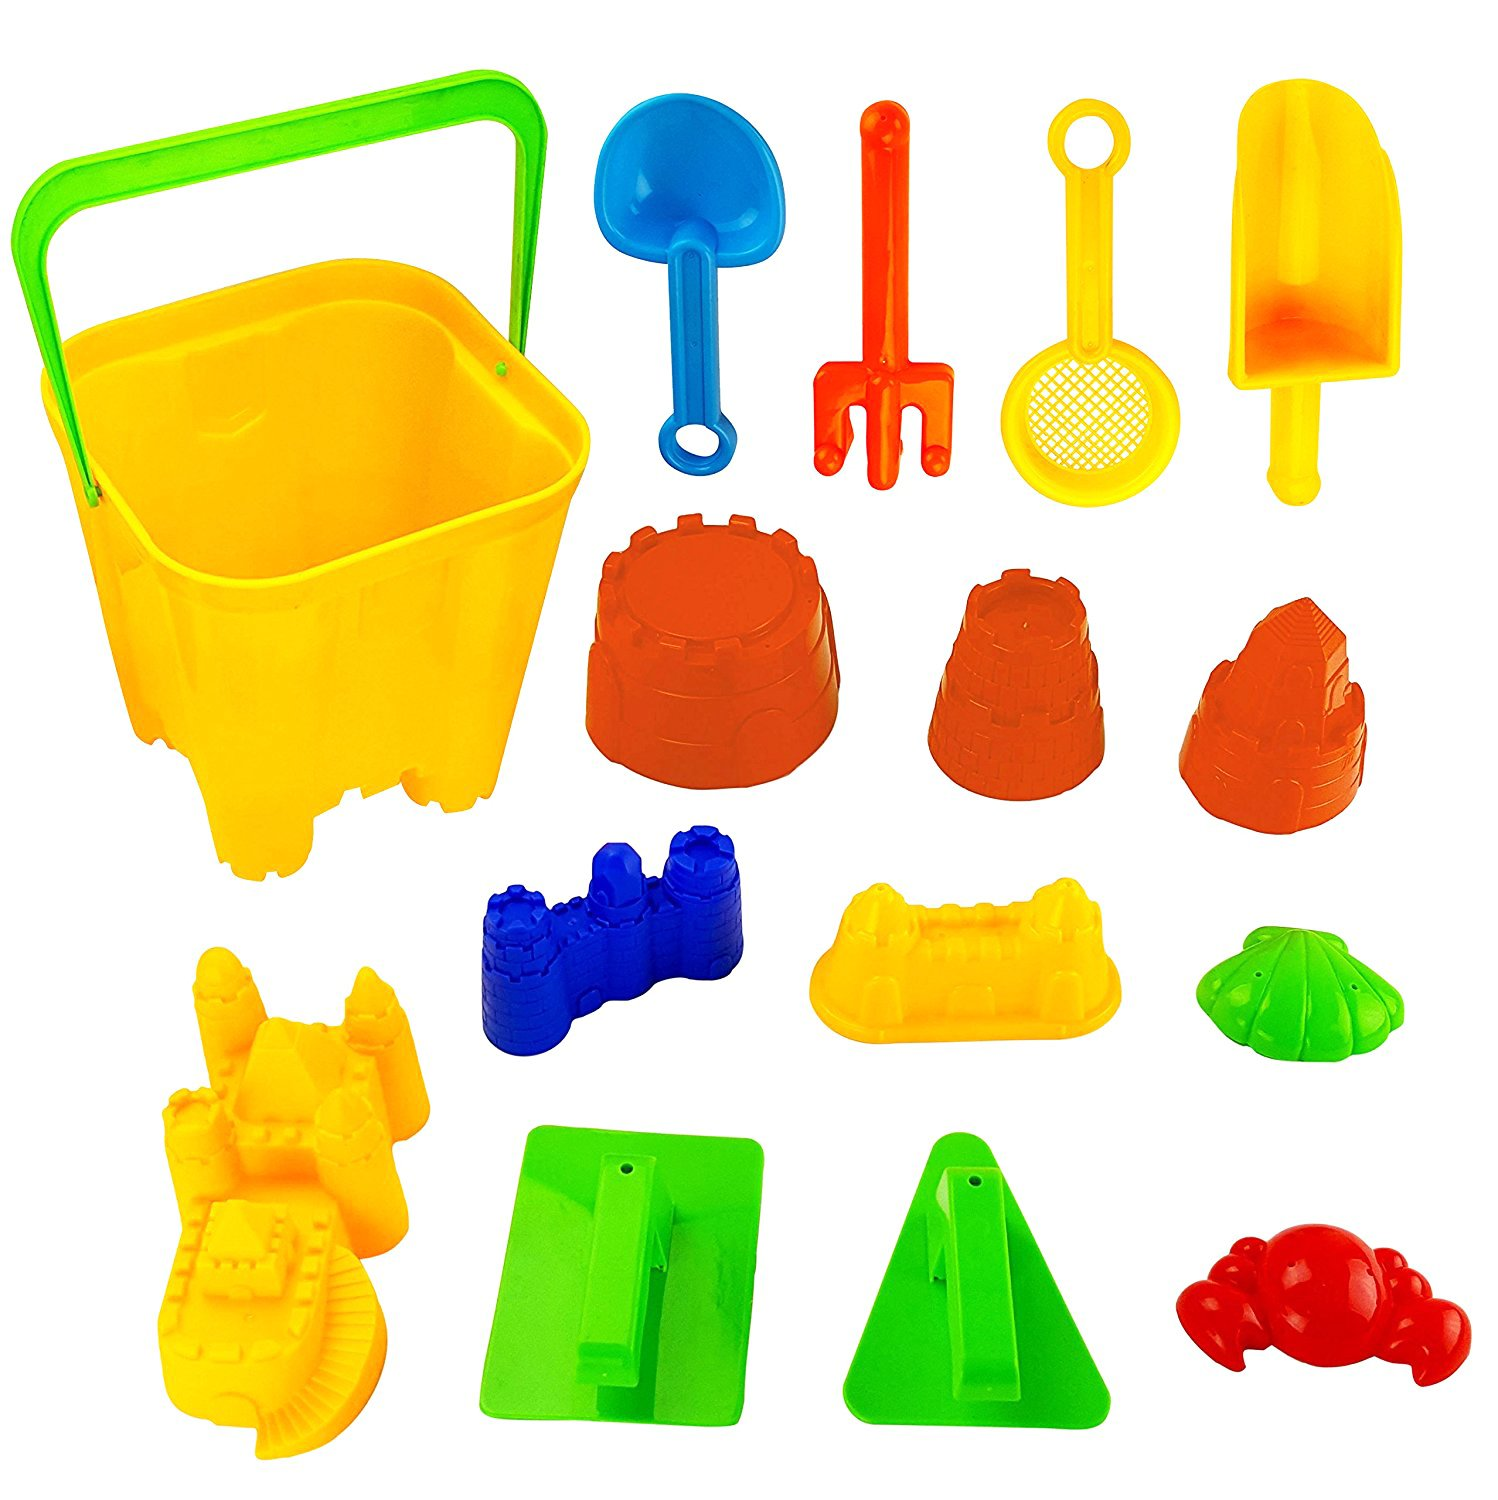 Liberty Imports 15 Piece Sand Castle Building Kit - Beach Toys Set with Large Bucket, Rake, Shovels, Molds and More